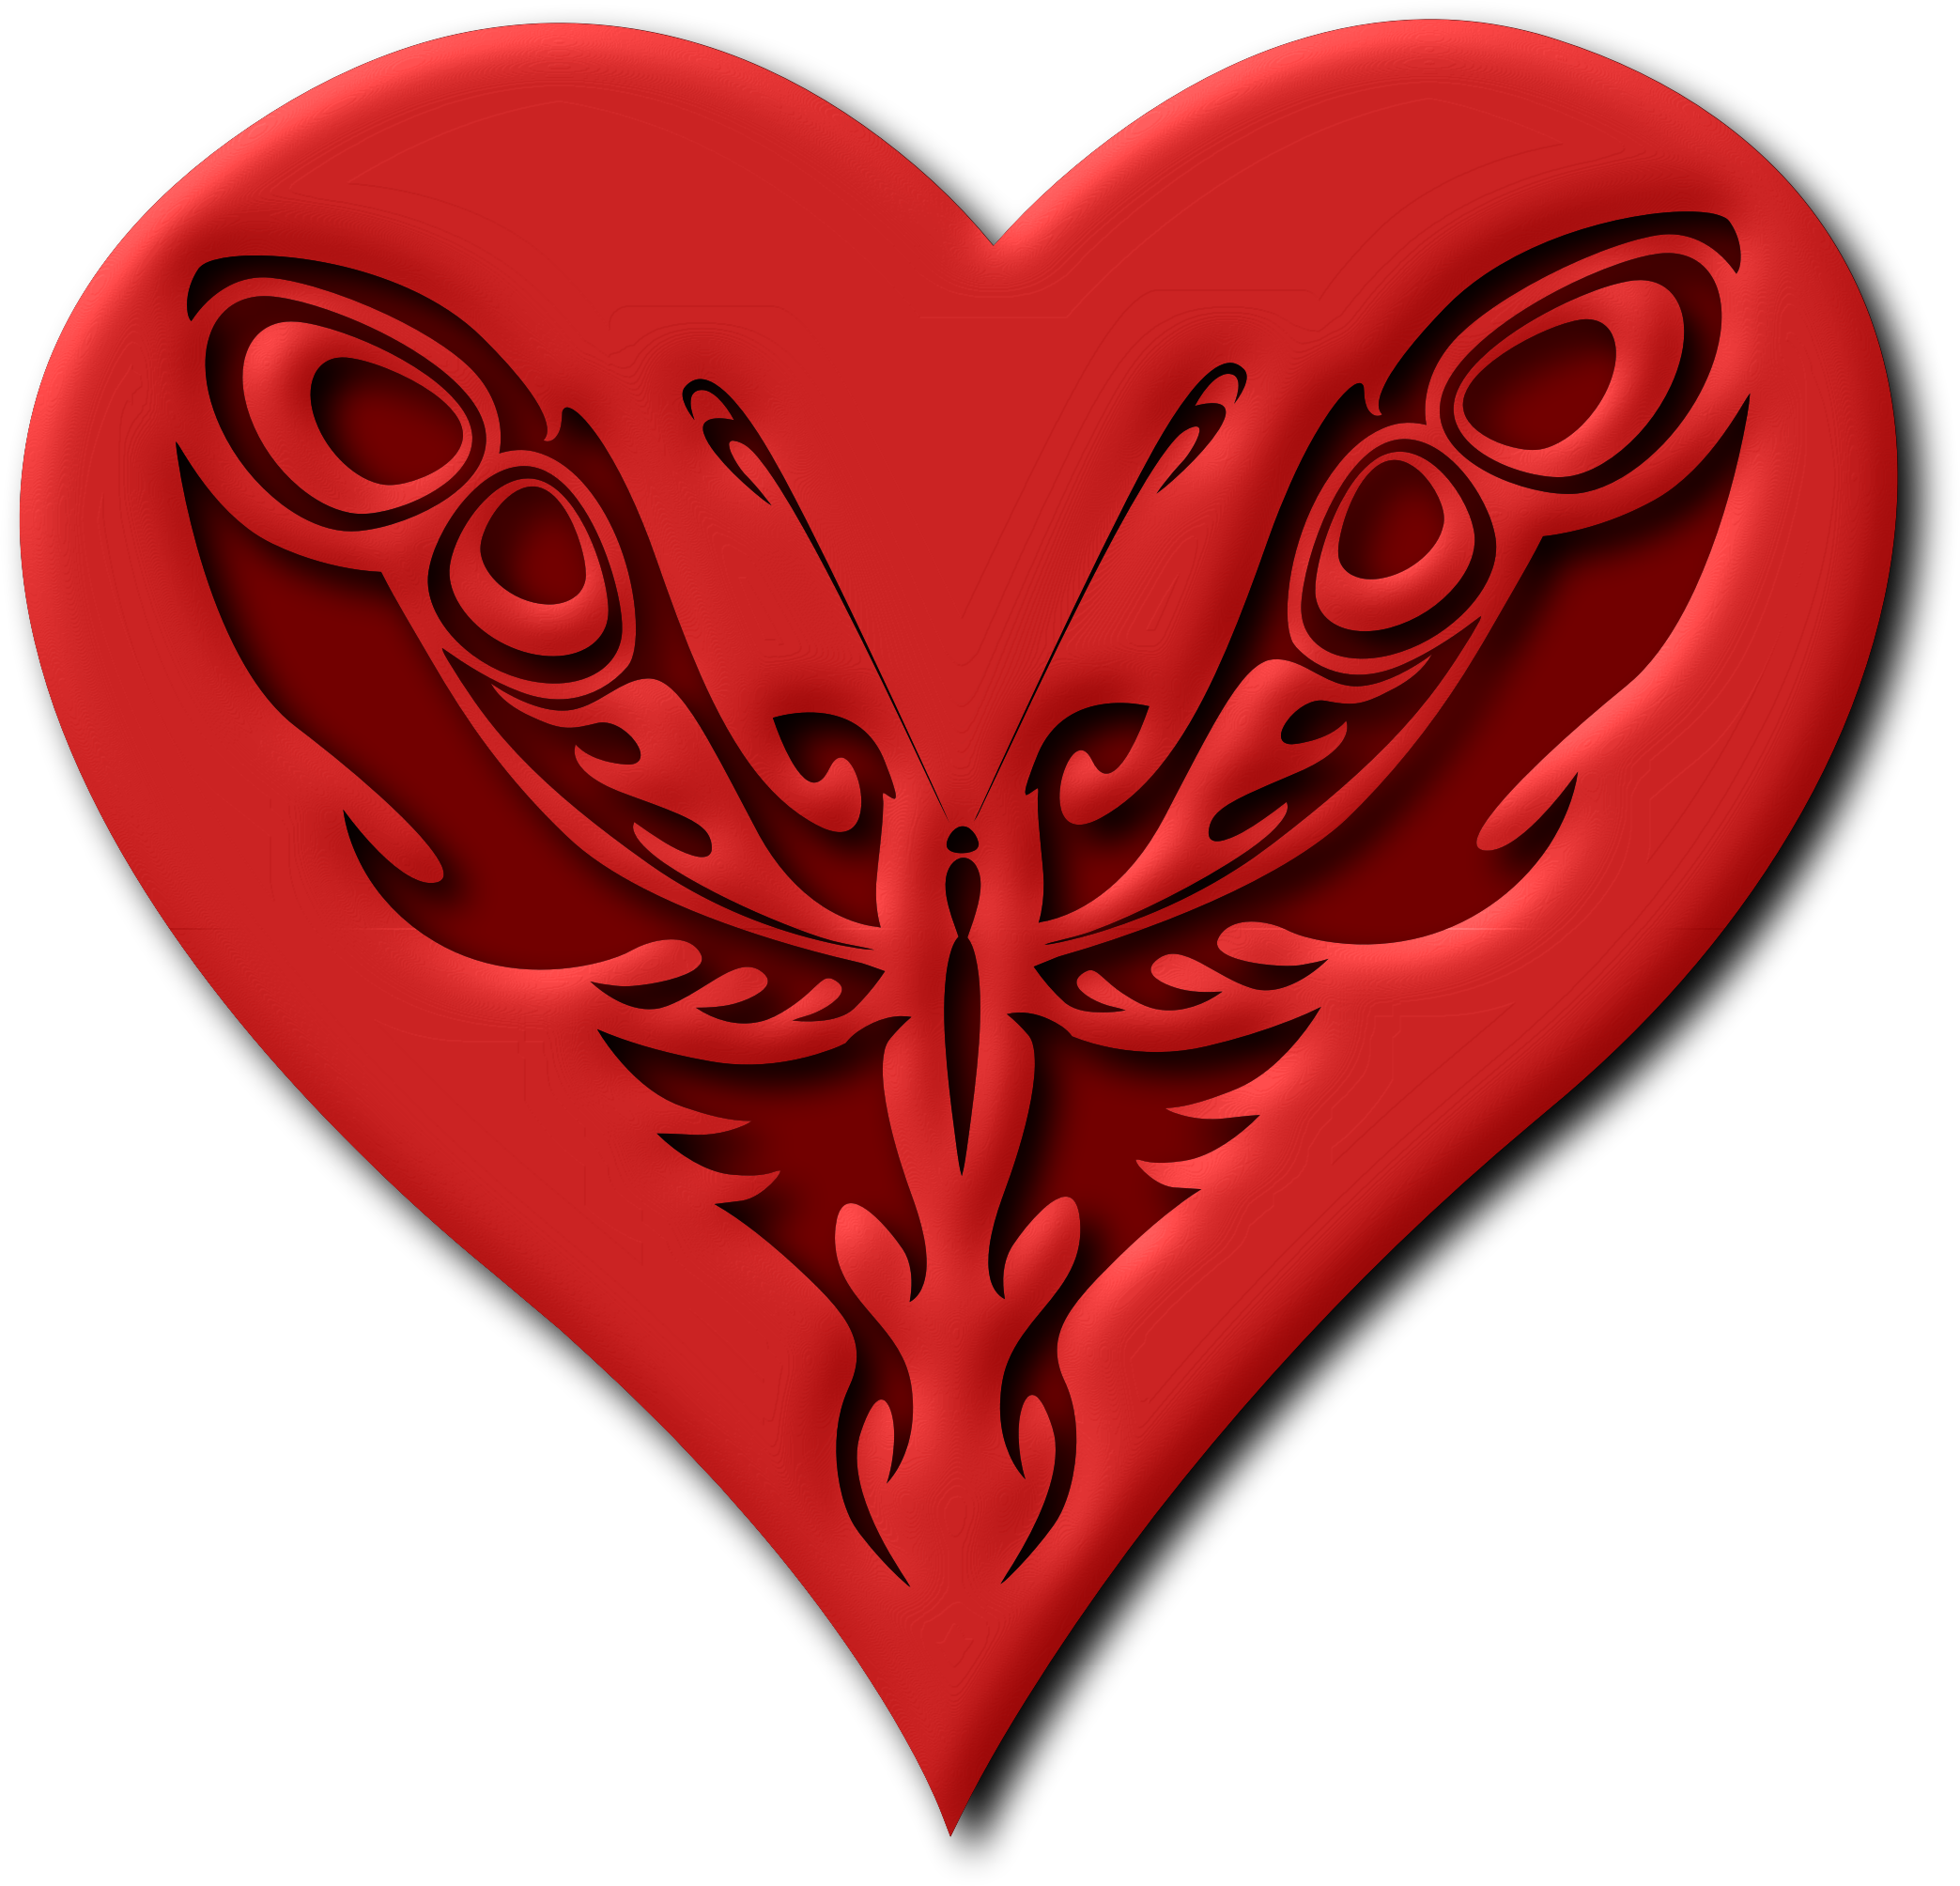 Butterfly heart (version 2) by Firkin